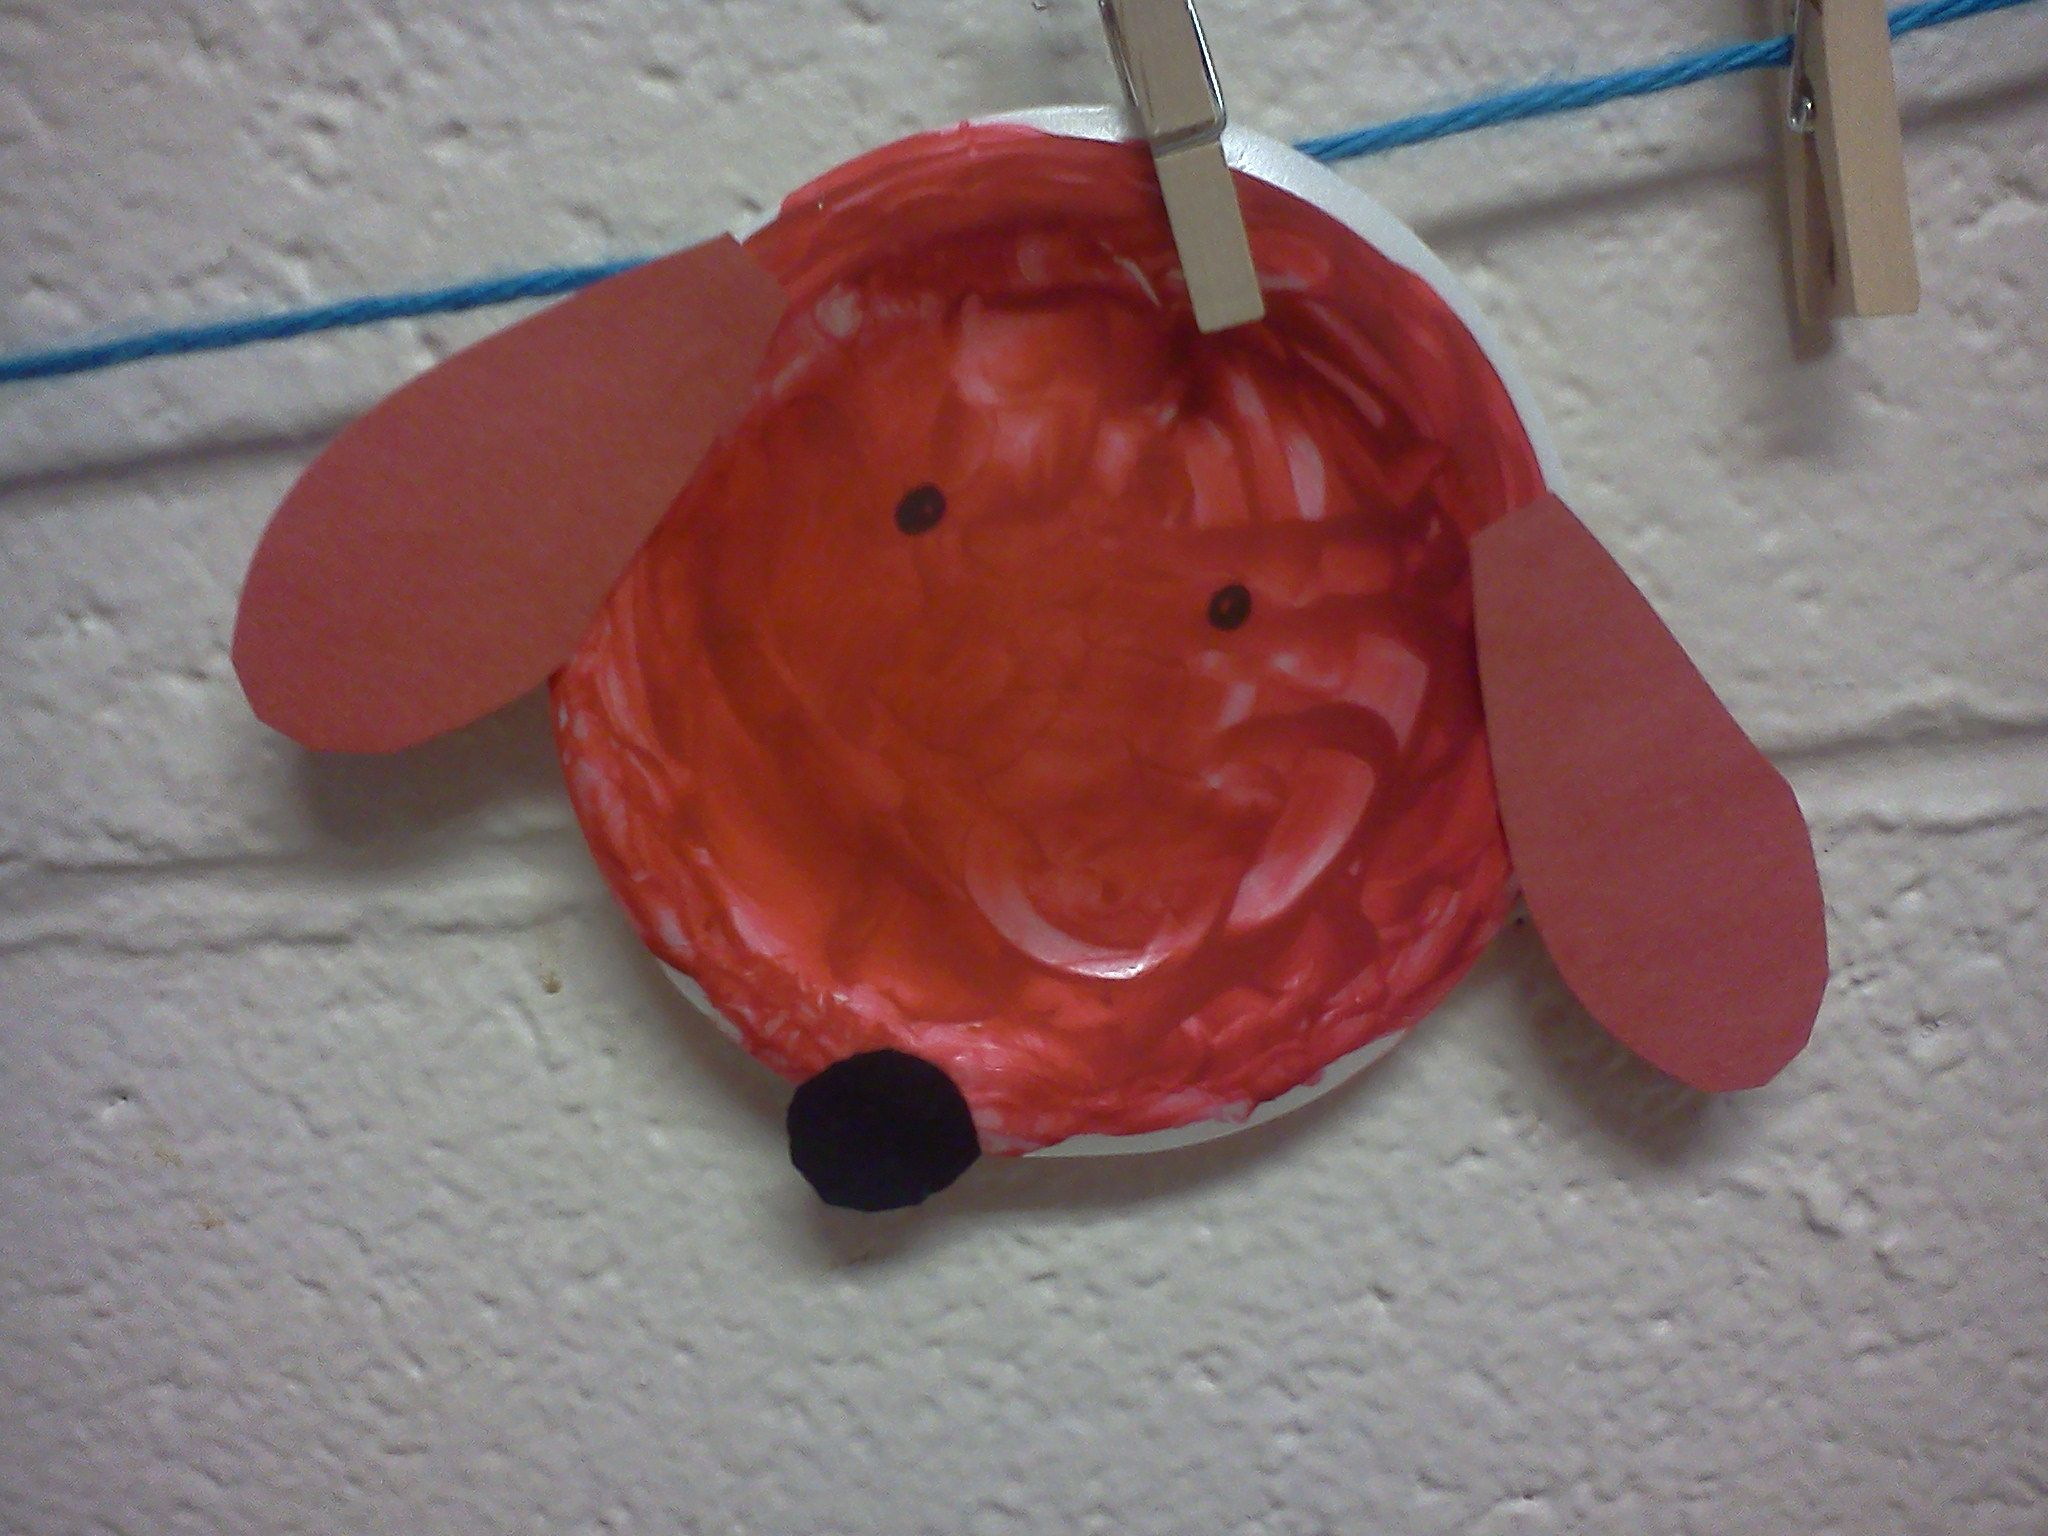 This Was At A Local School In Celebration Of Clifford The